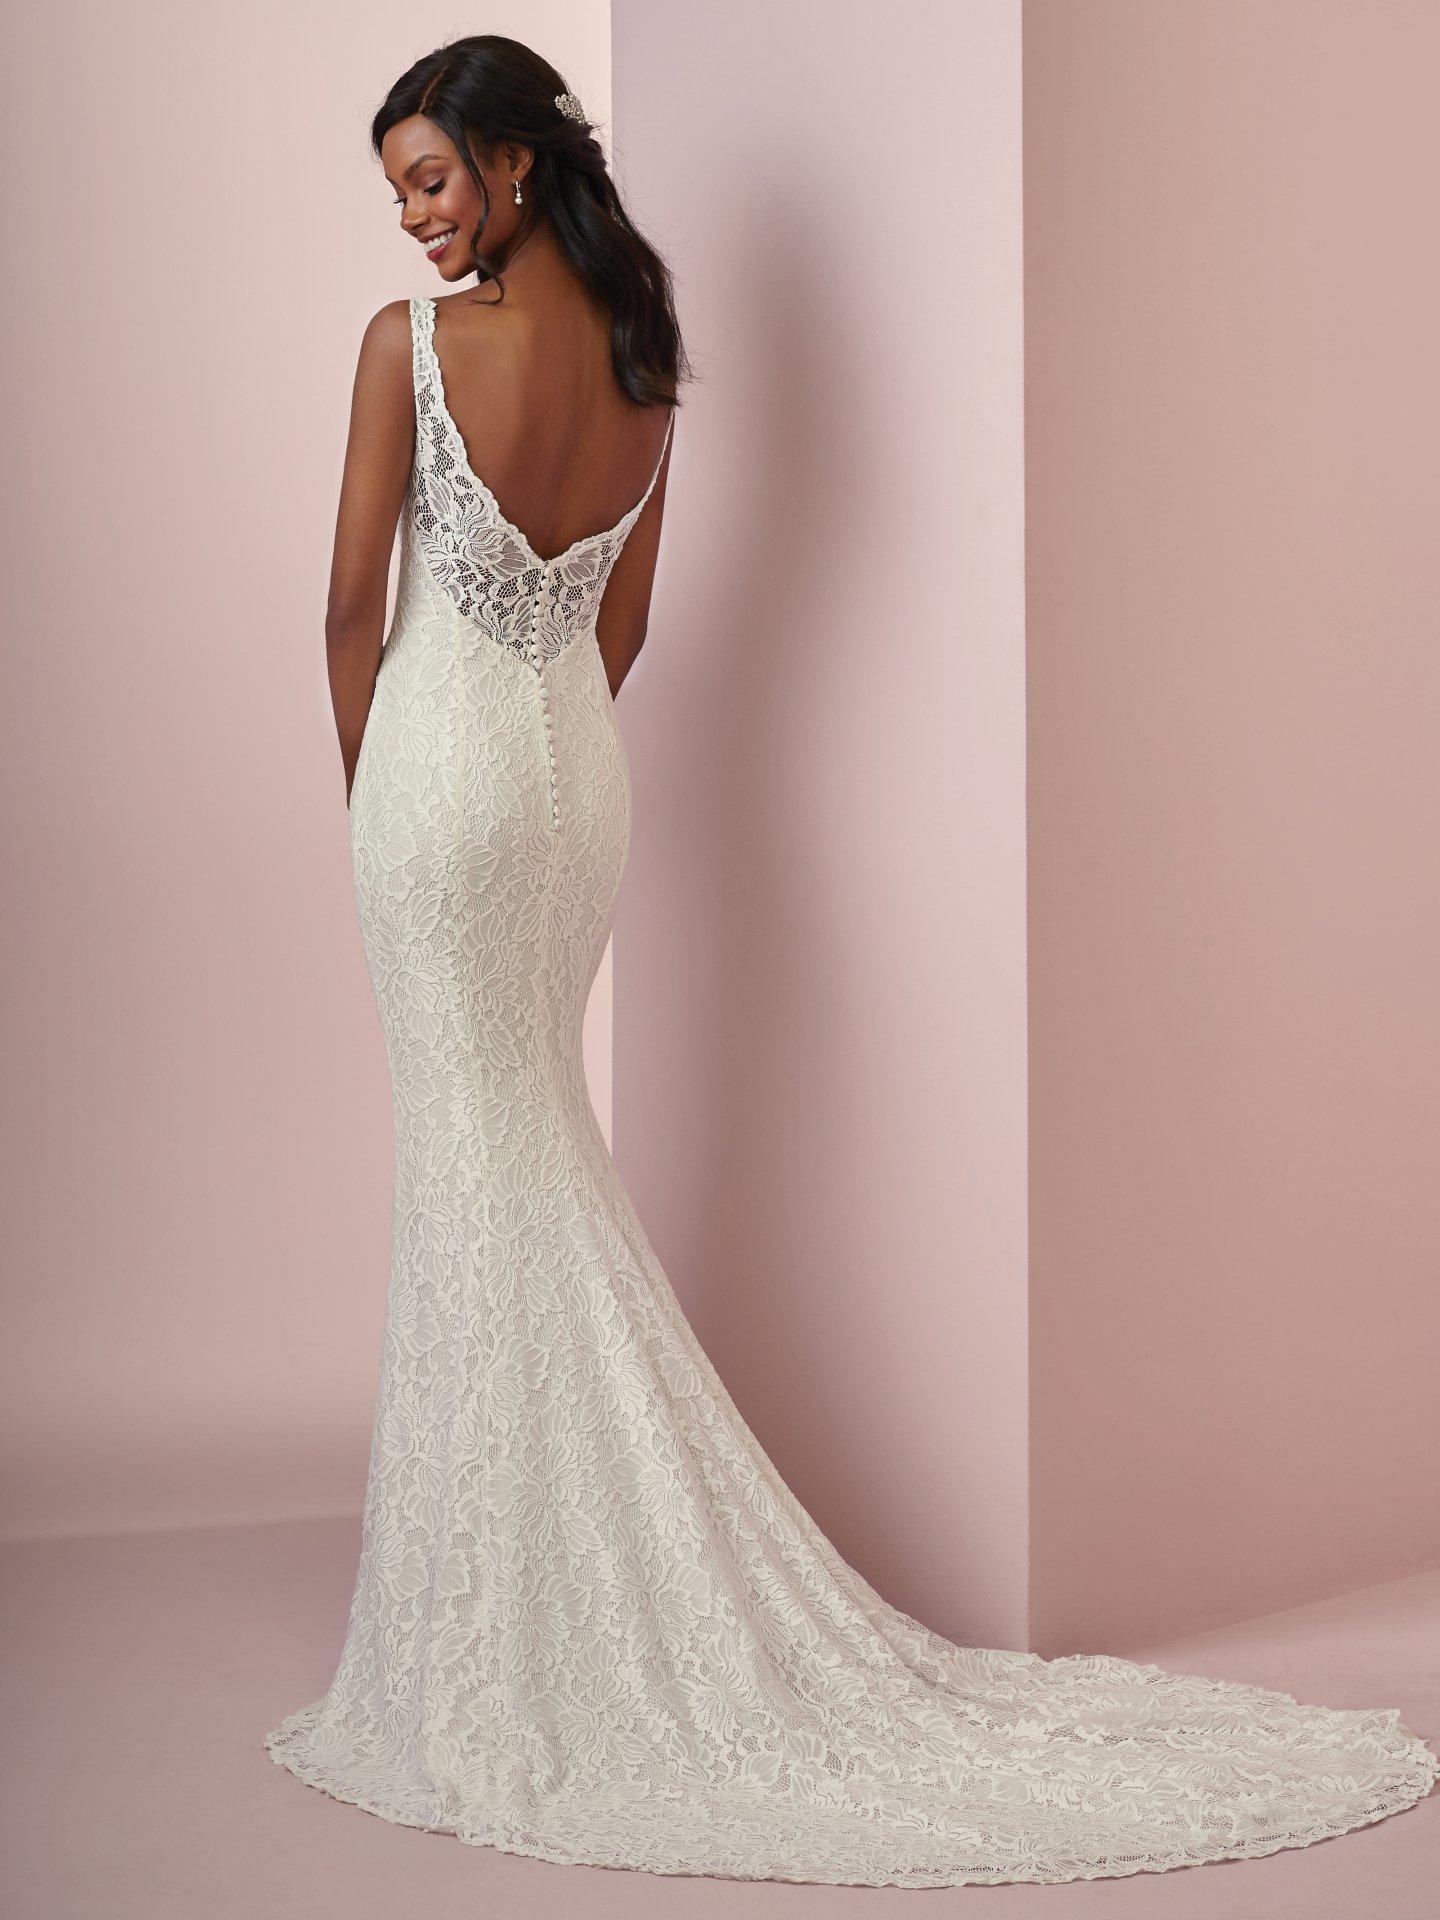 561d3680 Another look at the Maggie Sottero Tina gown! | New Arrivals ...